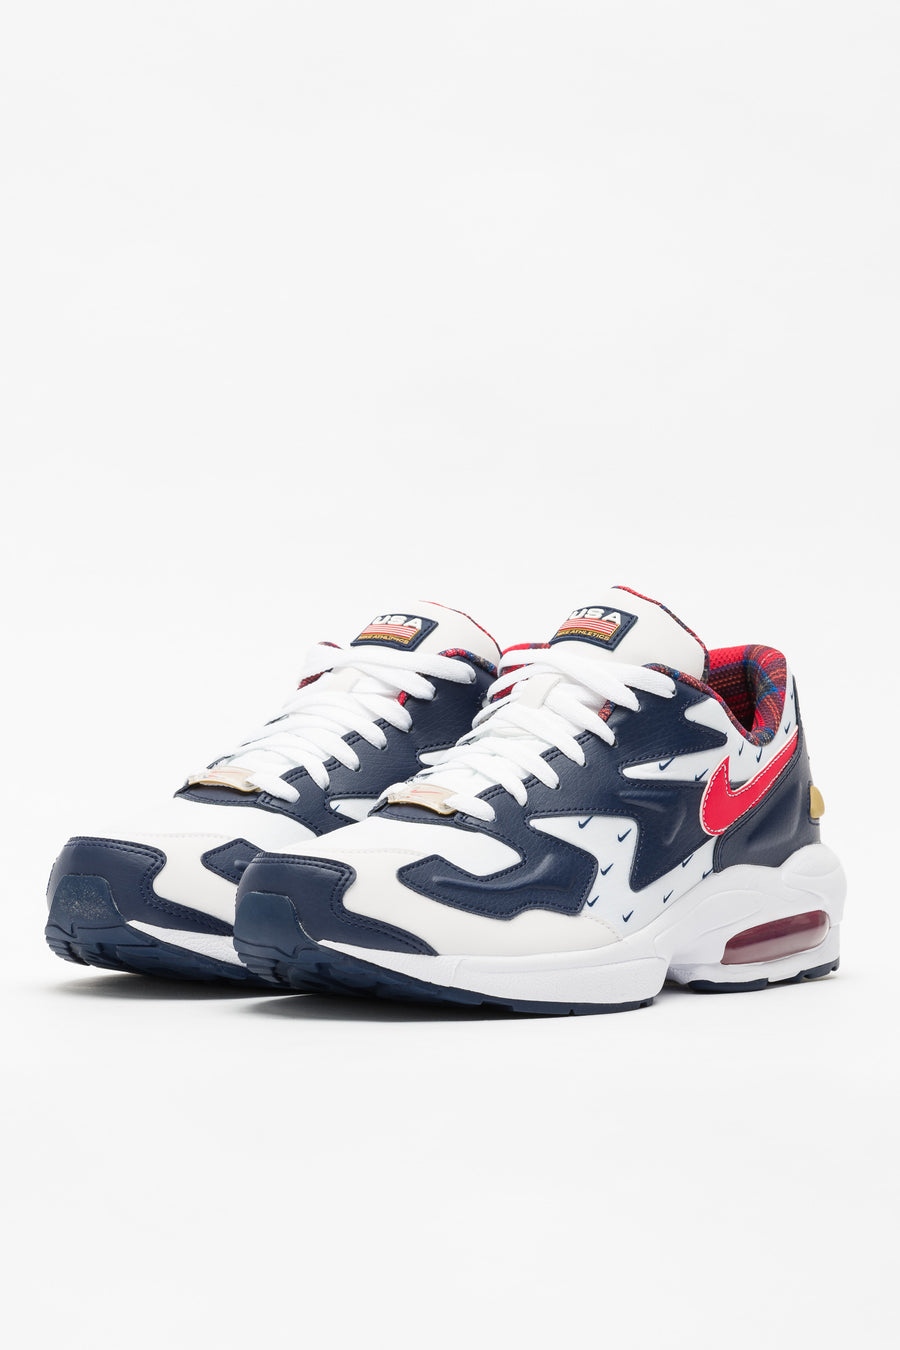 Nike Air Max2 Light in White/Red/Navy - Notre